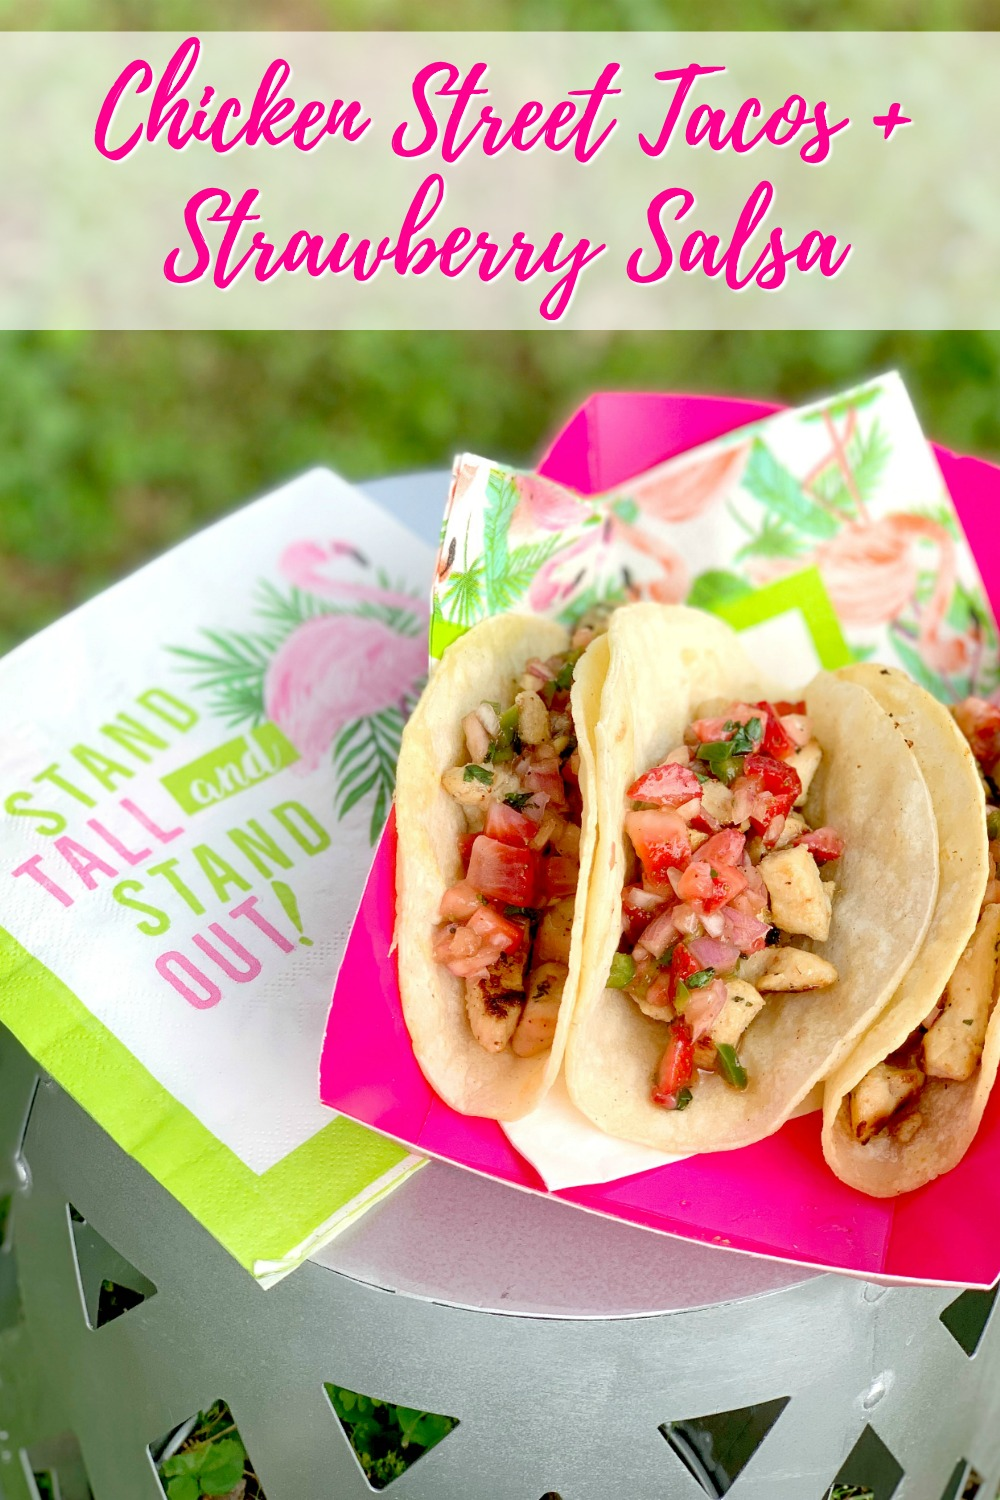 Chicken Street Tacos with Homemade Strawberry Salsa